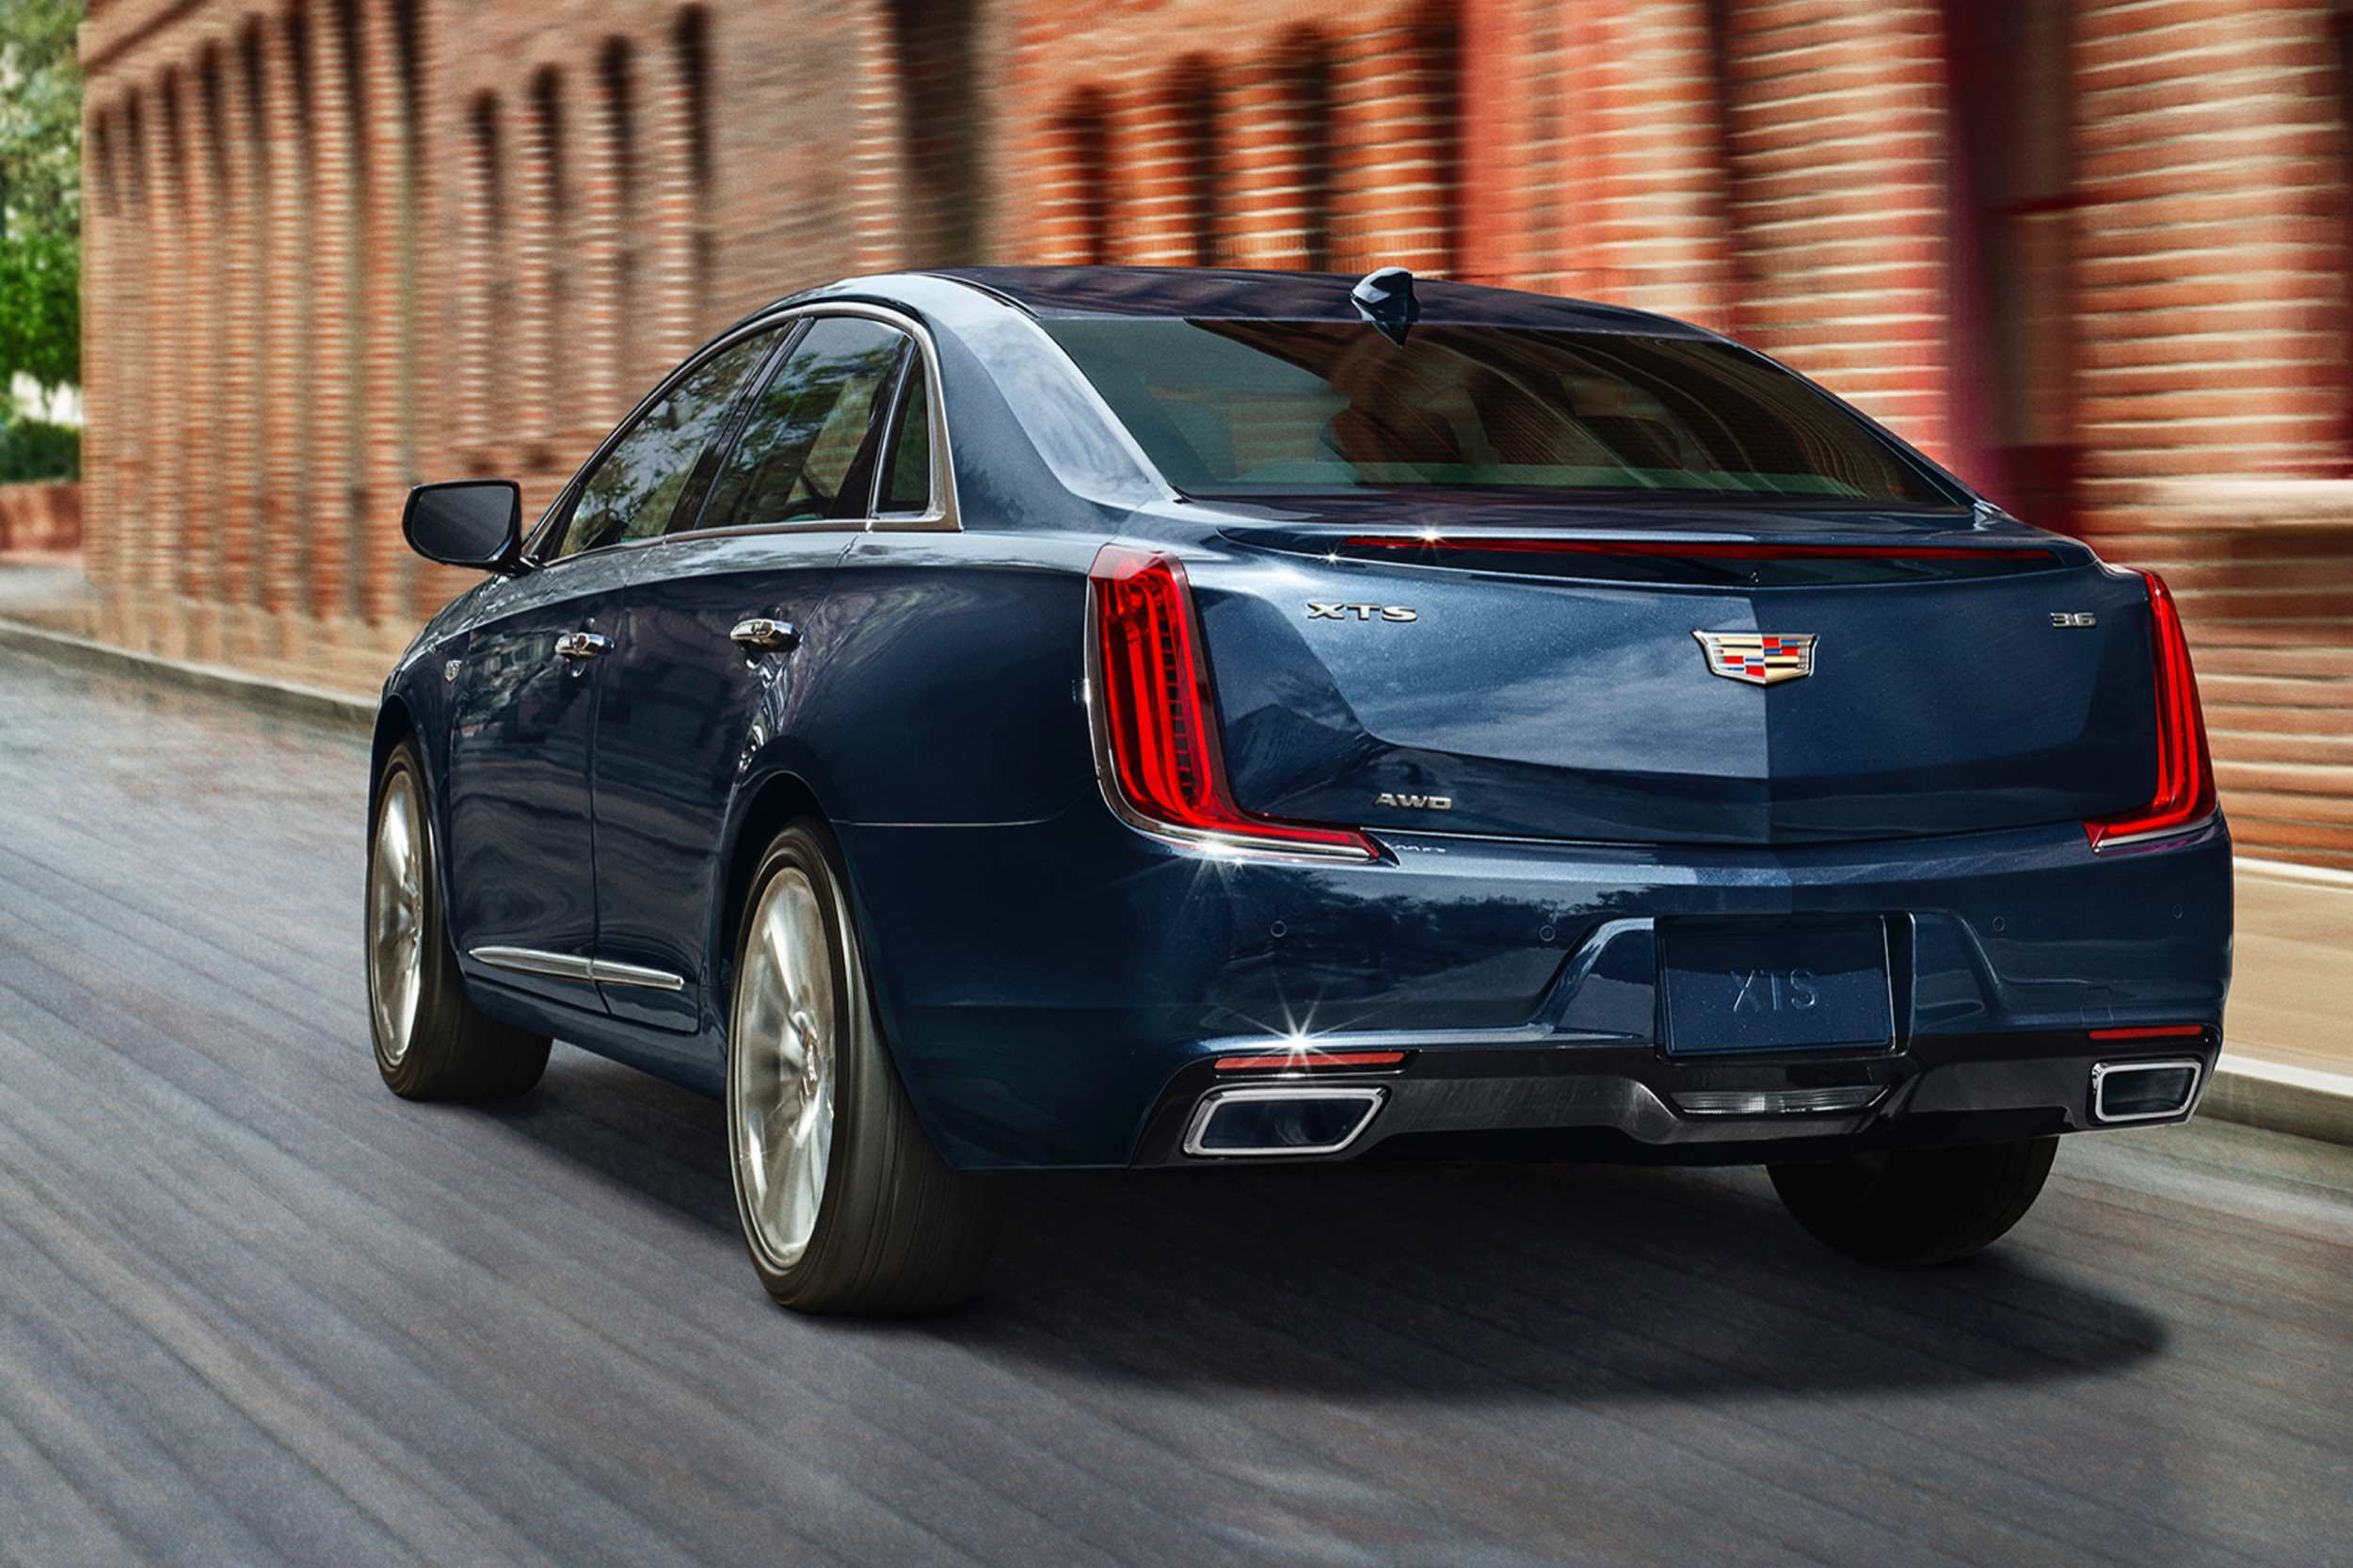 76 The Best 2020 Cadillac Xts Premium Style